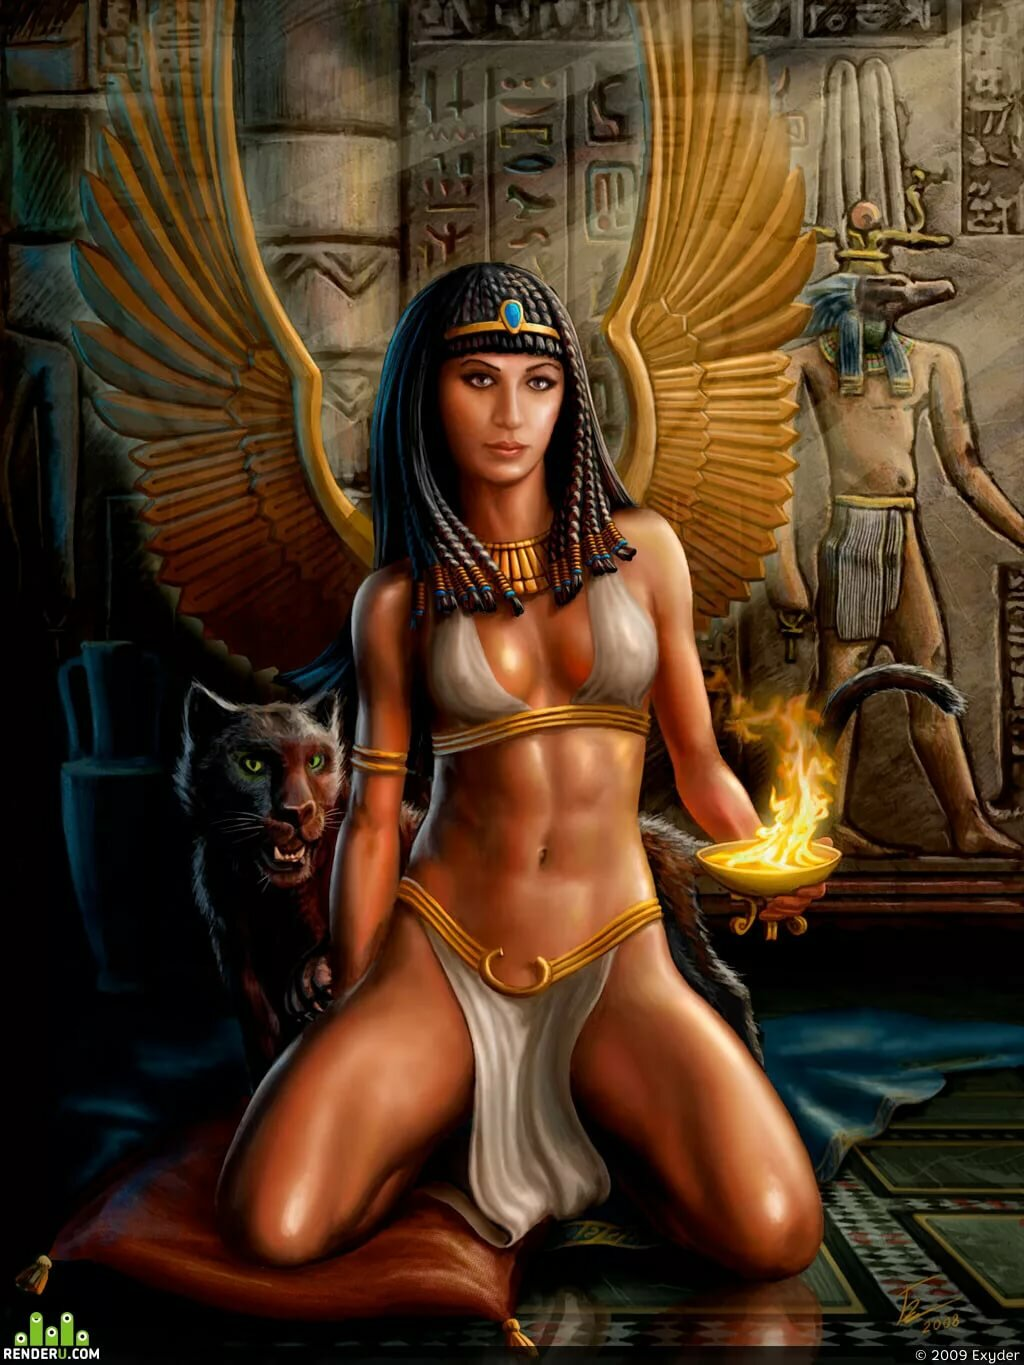 Ancient egyptian art nude queen with juguars statue figurine sculpture